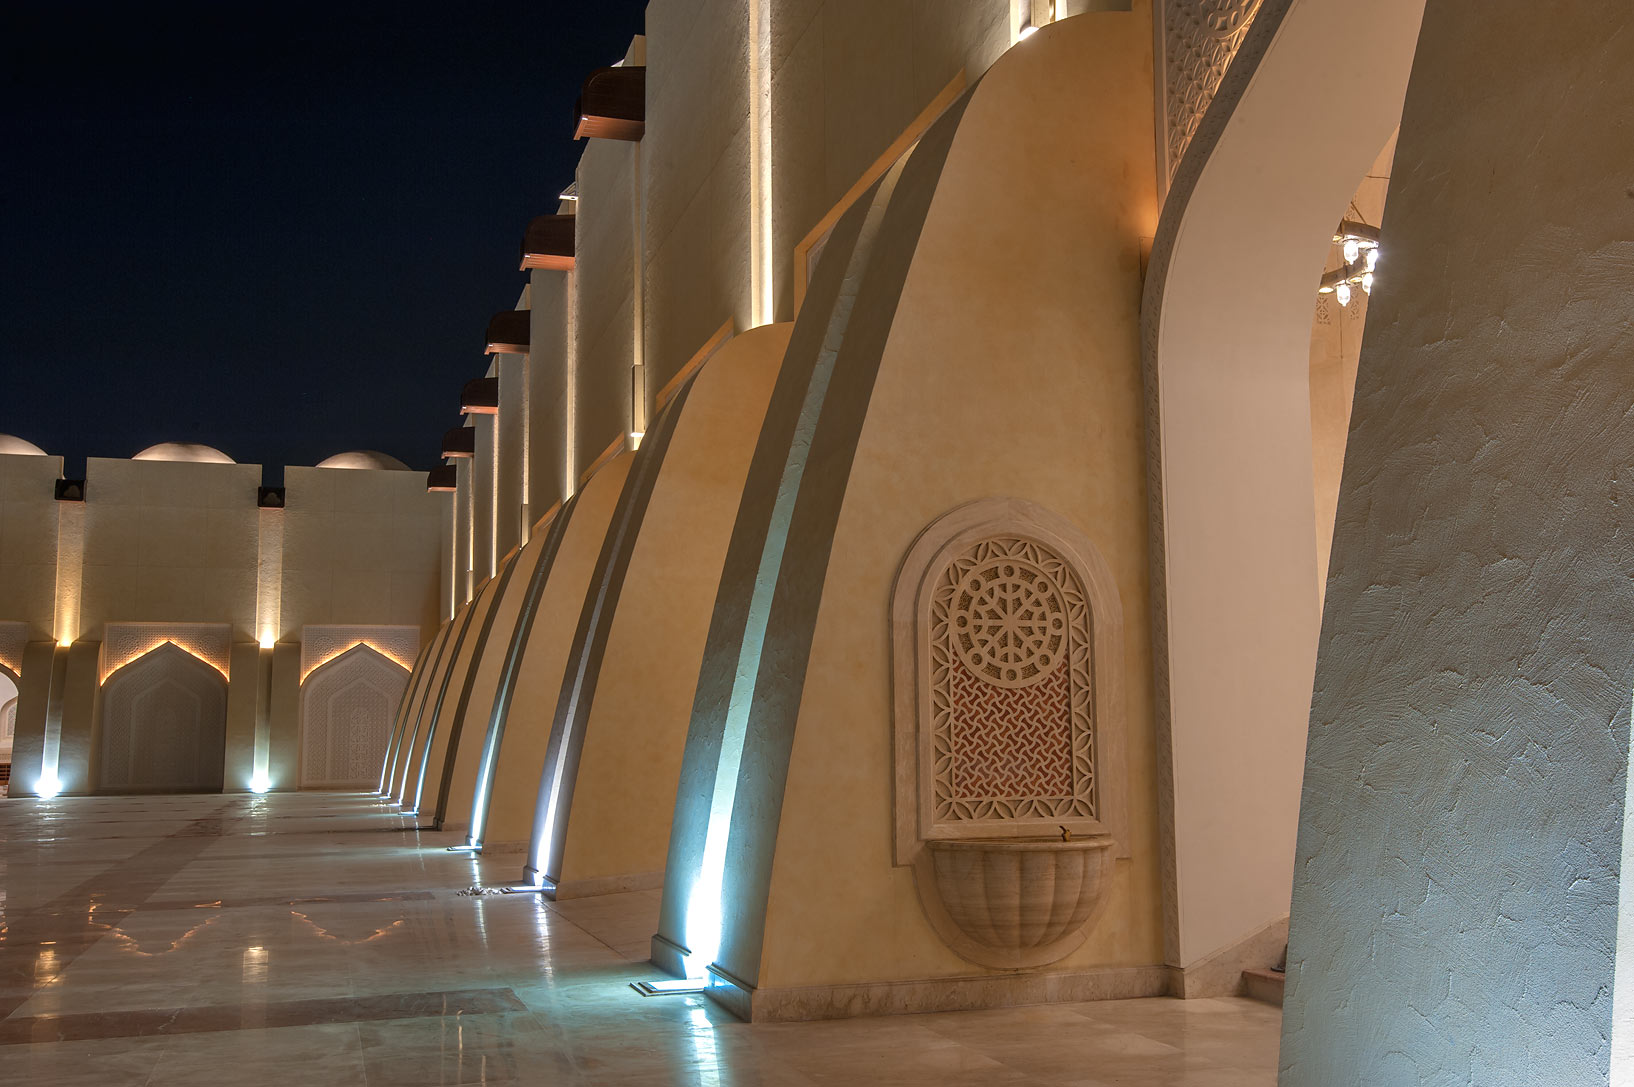 Stone walls of courtyard of State Mosque (Sheikh...Ibn Abdul Wahhab Mosque). Doha, Qatar